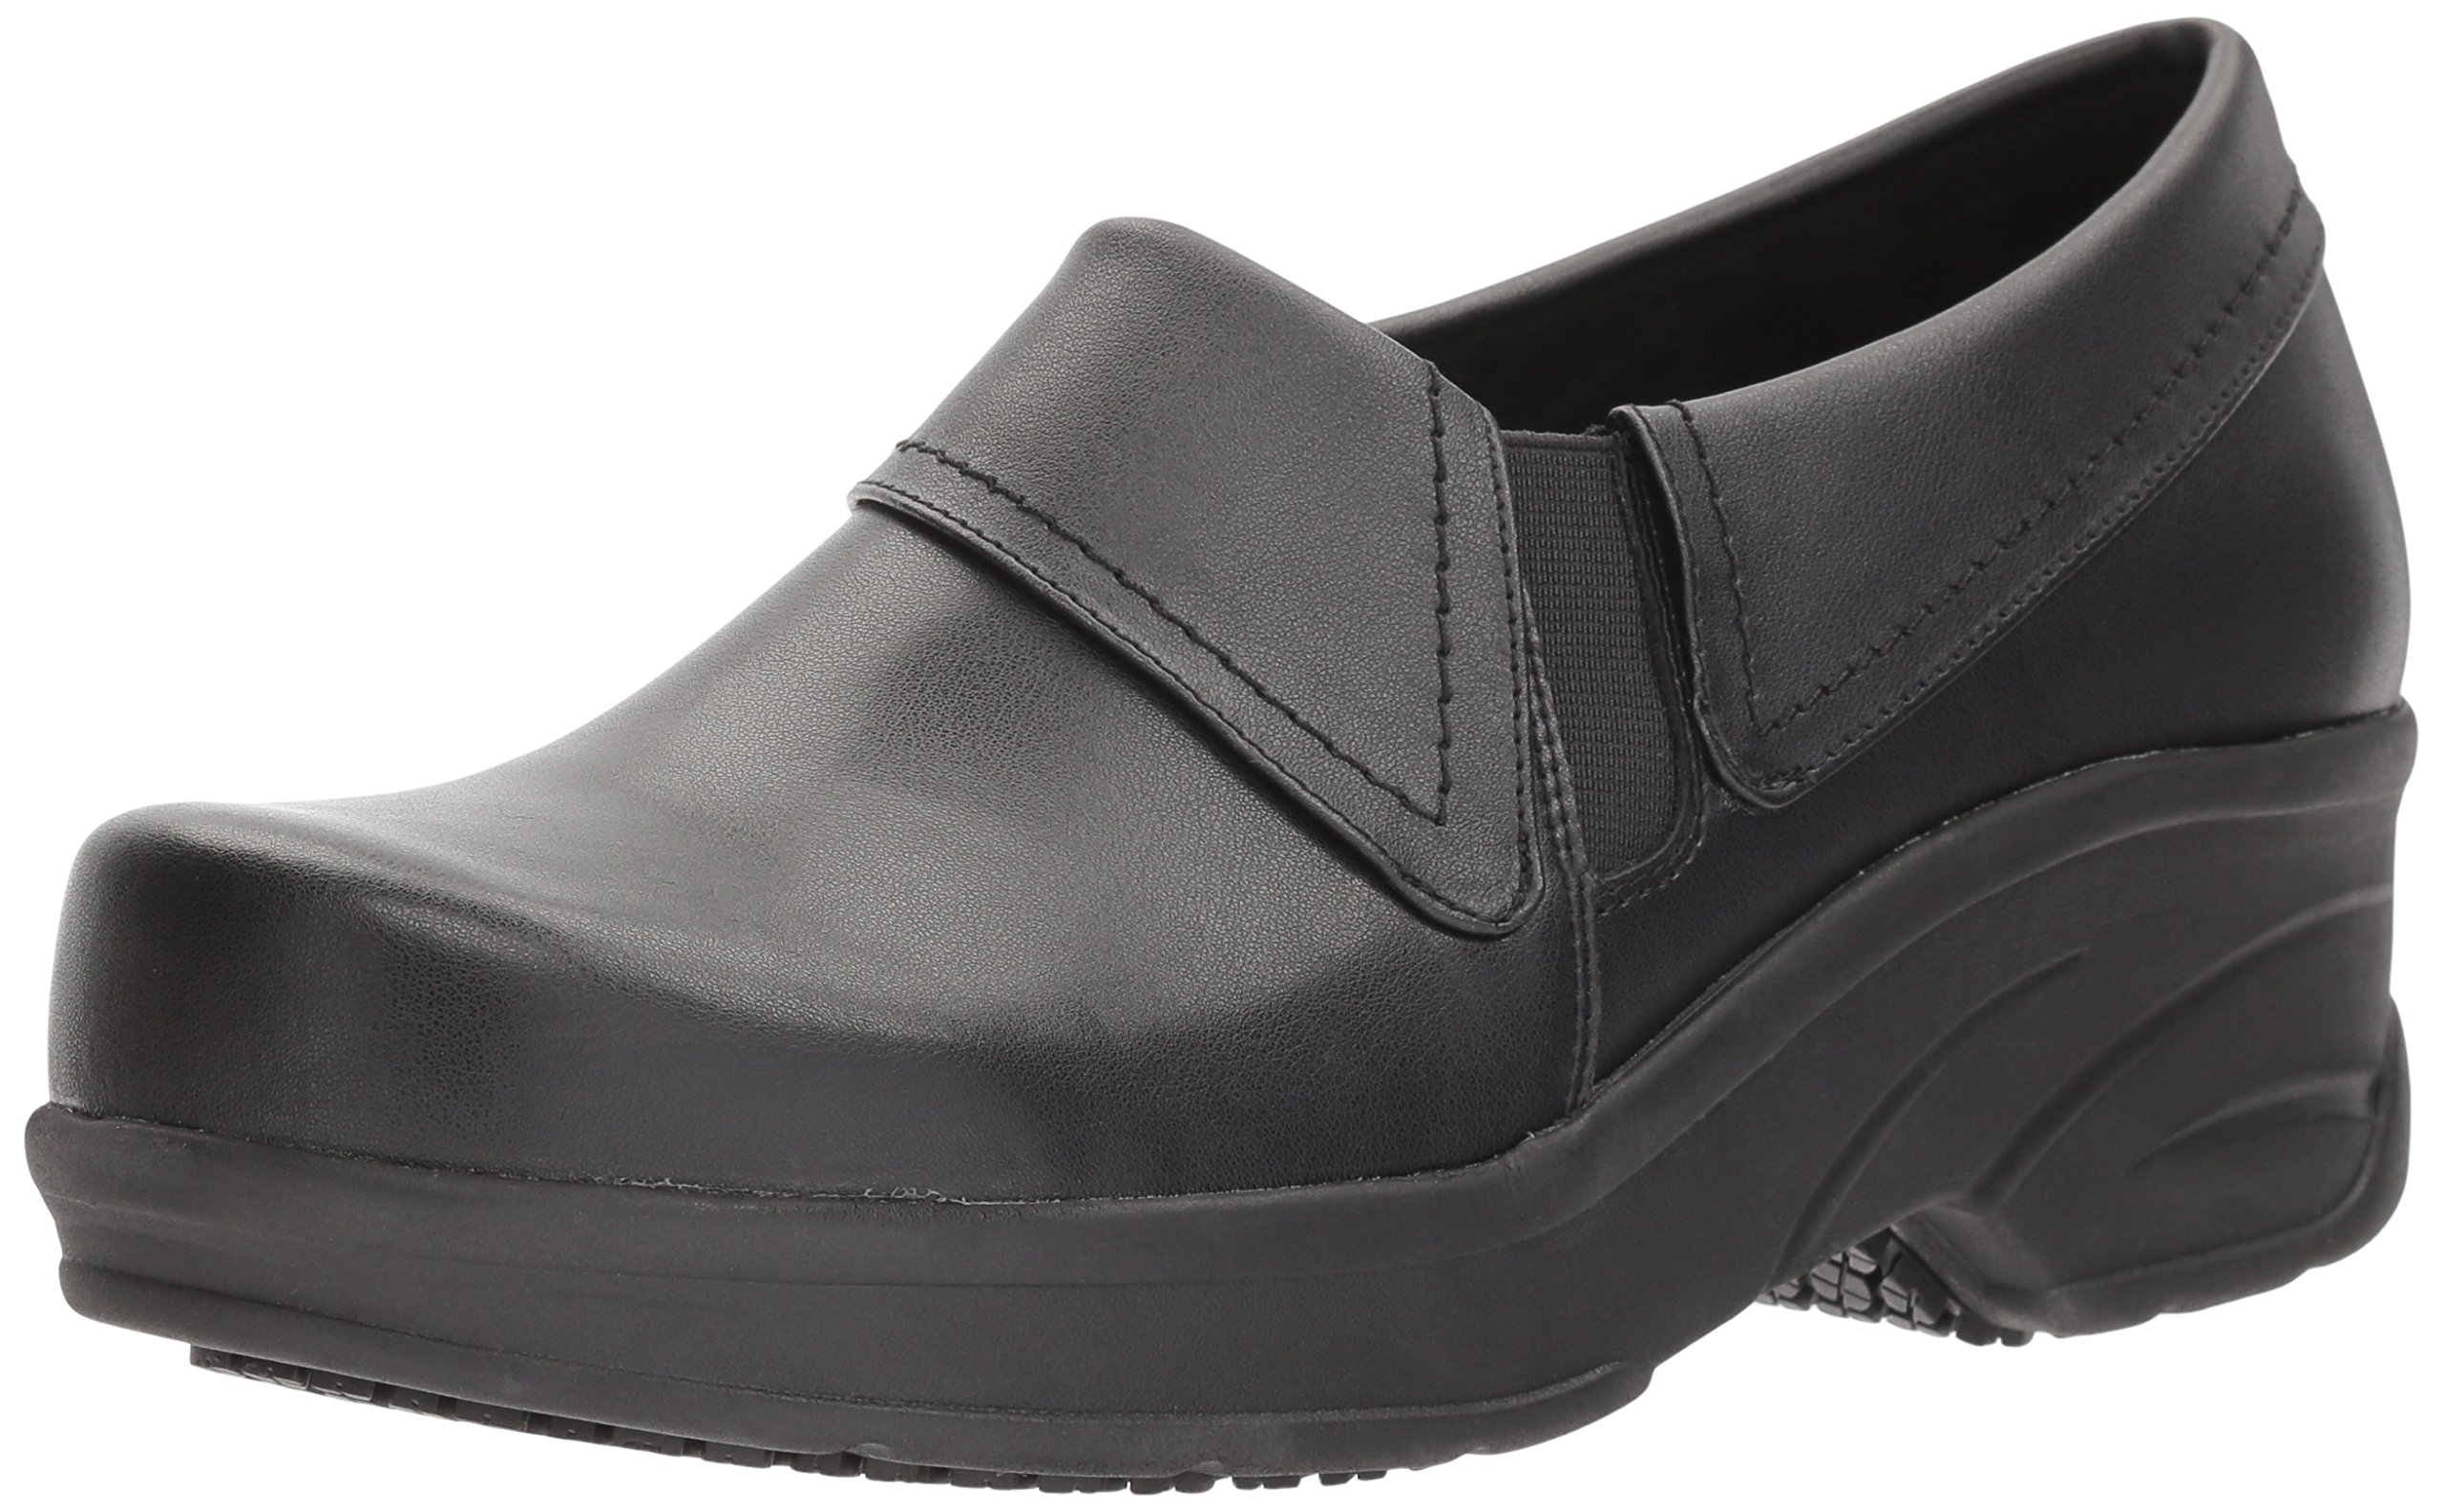 Easy Works Women's Assist Health Care Professional Shoe, Black, 7.5 W US